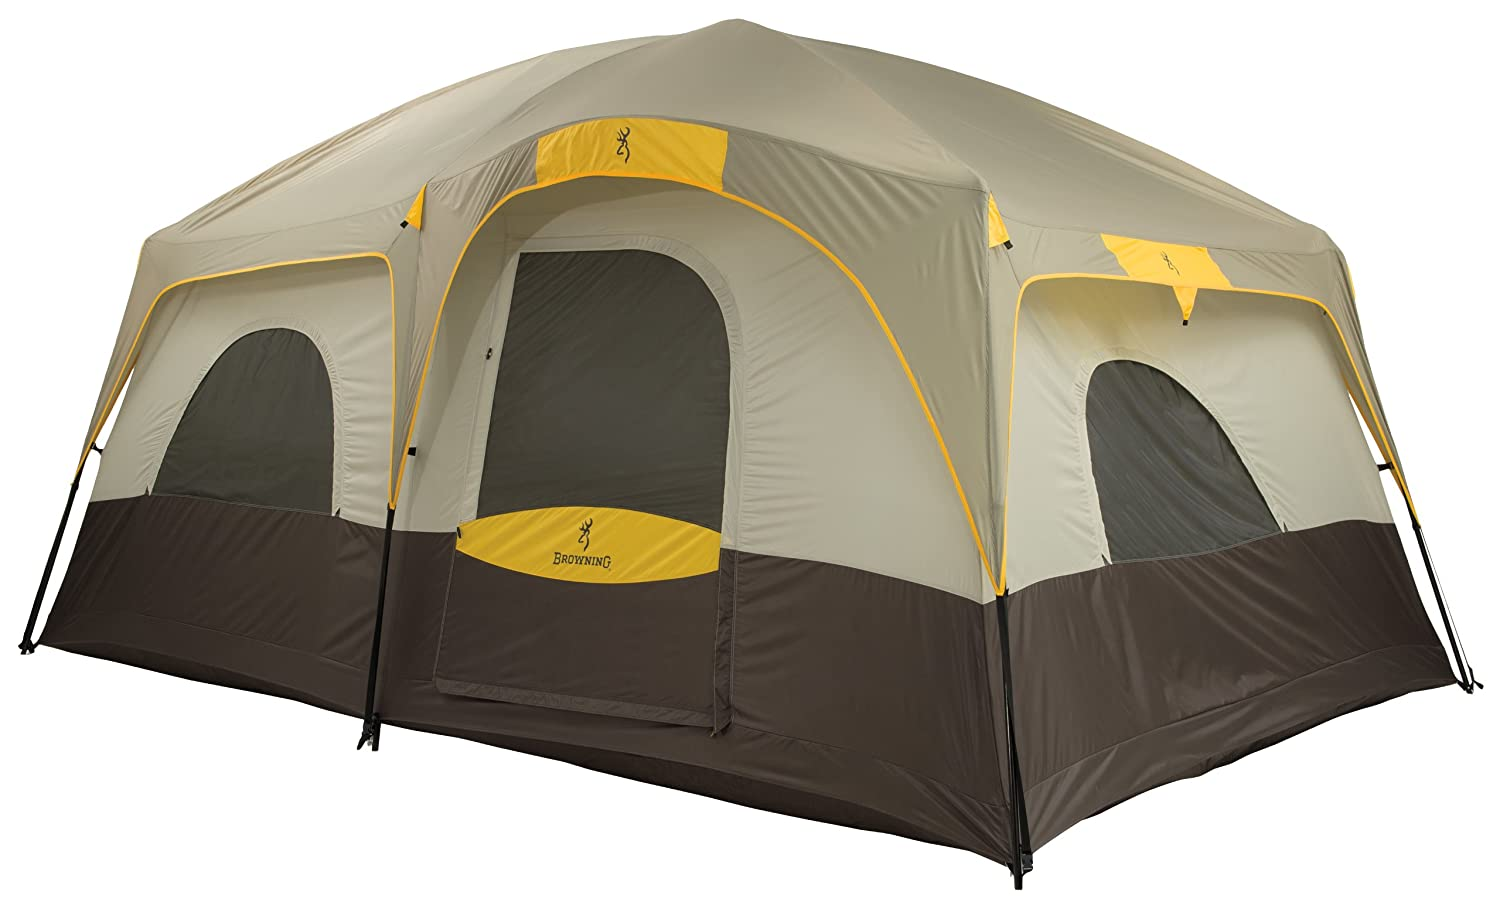 Top 10 Best Large Family Camping Tents 20162017 on Flipboard